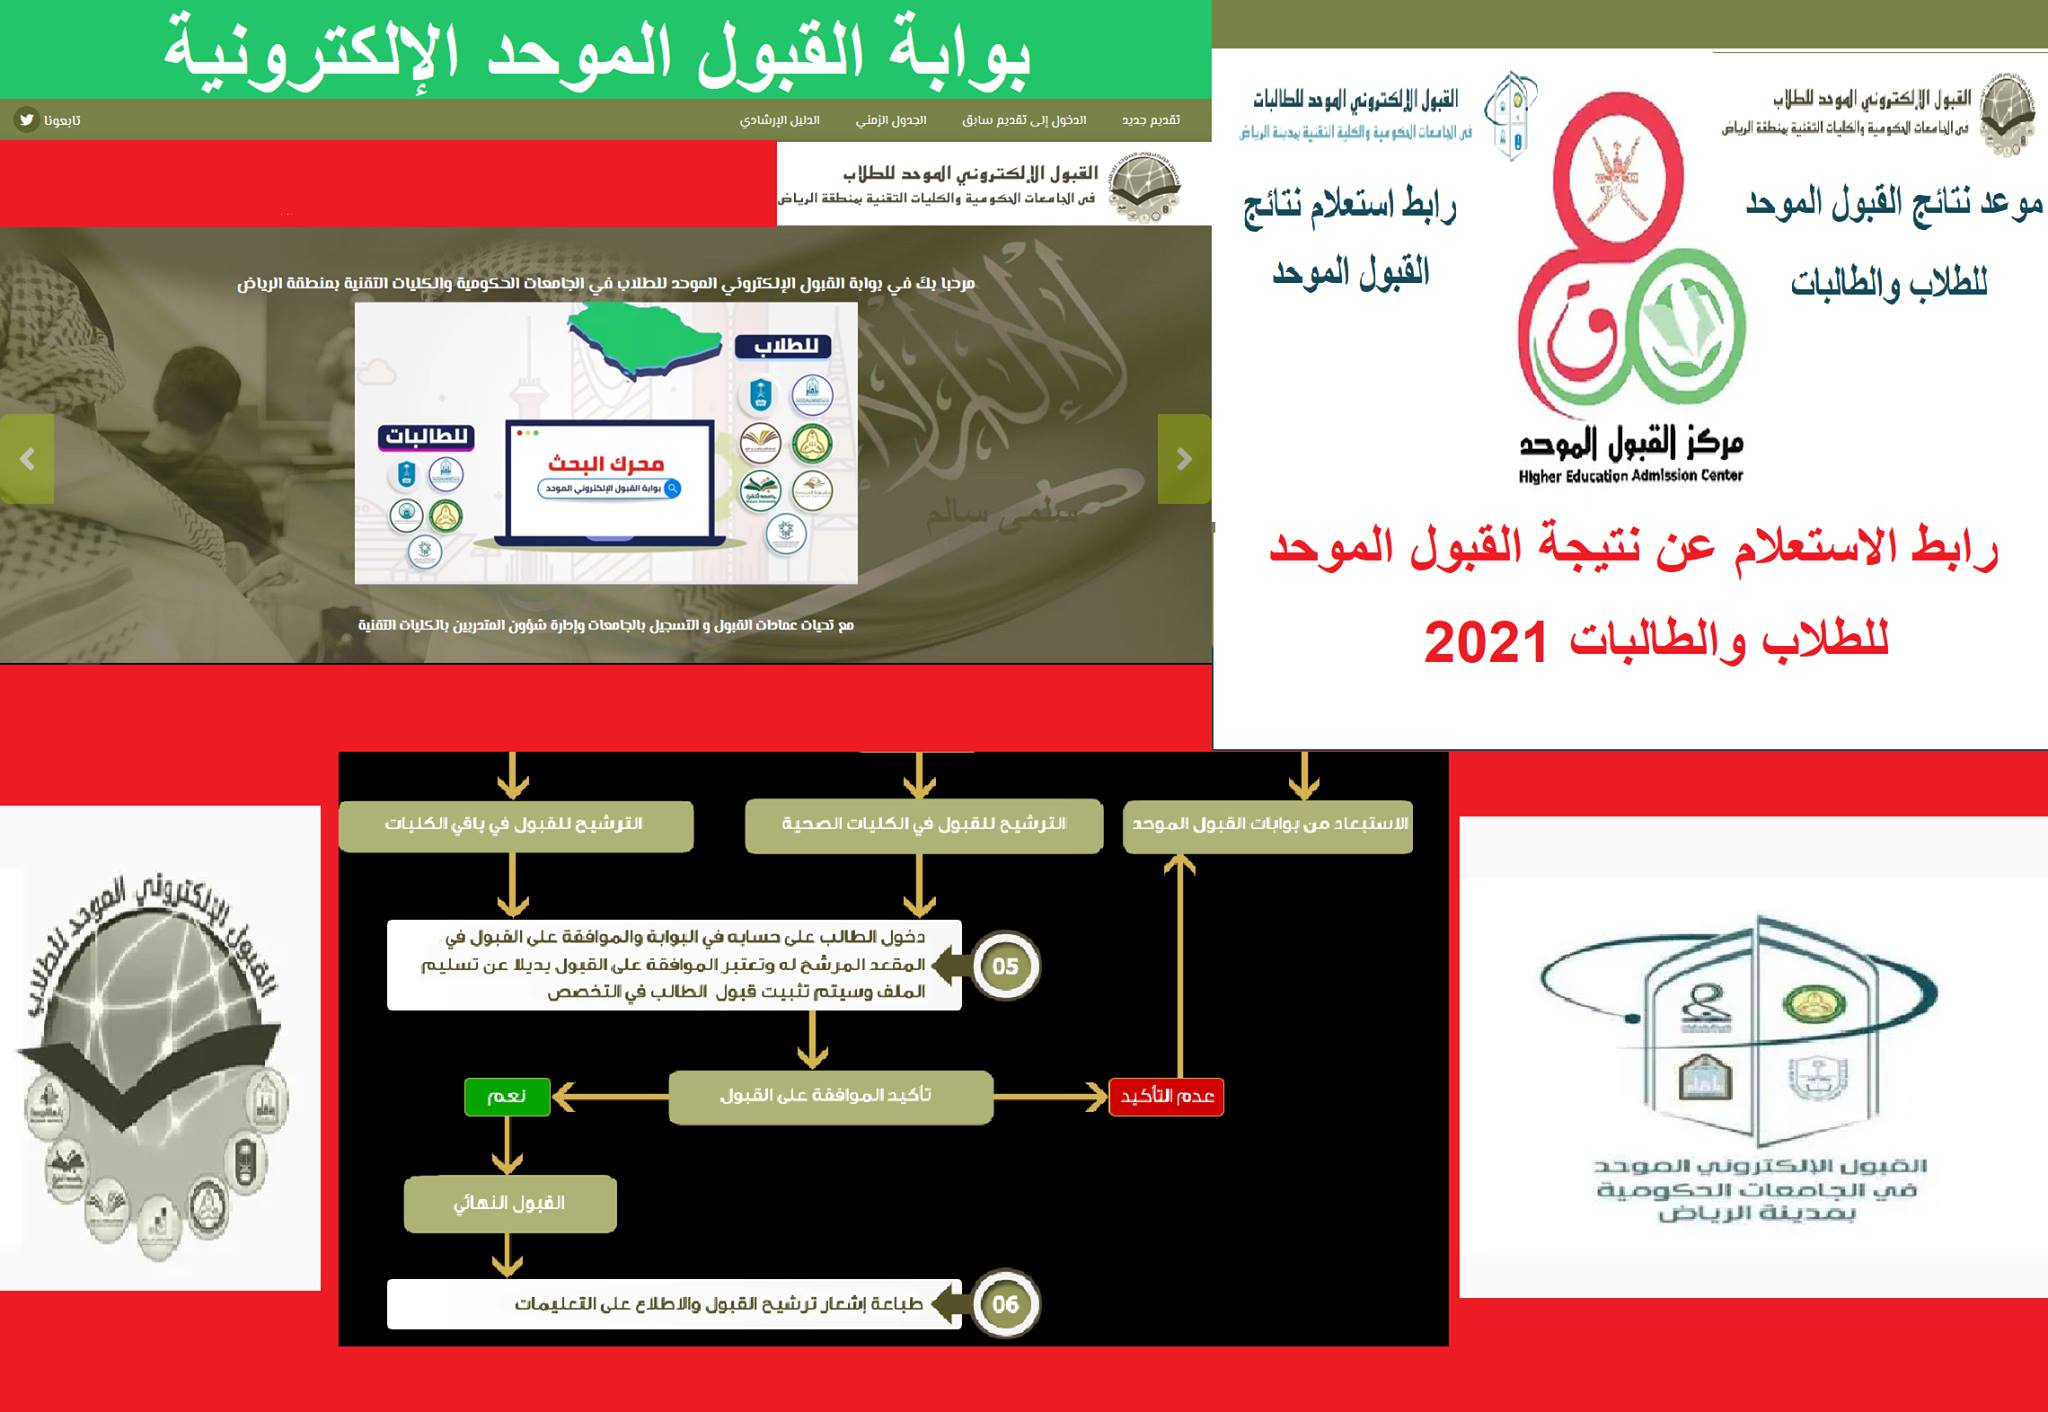 The unified electronic admission dates for female and male students 2021 Screening, confirmation and acceptance rates 1443 in universities